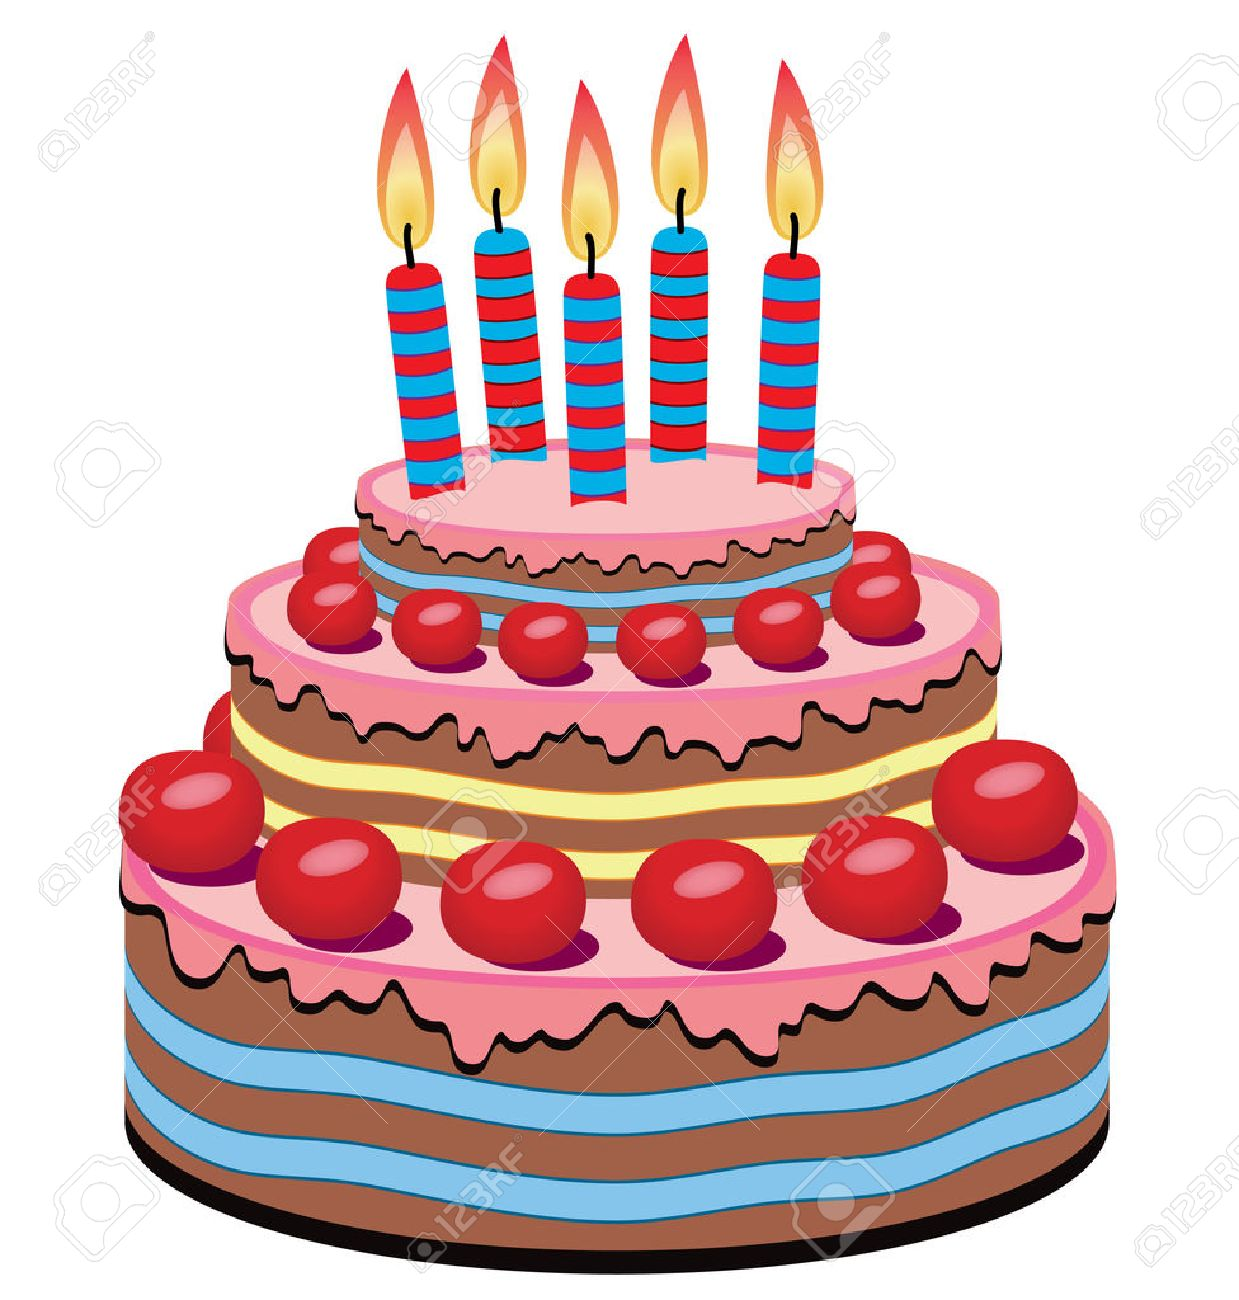 birthday cake with burning candles Stock Vector - 8026854